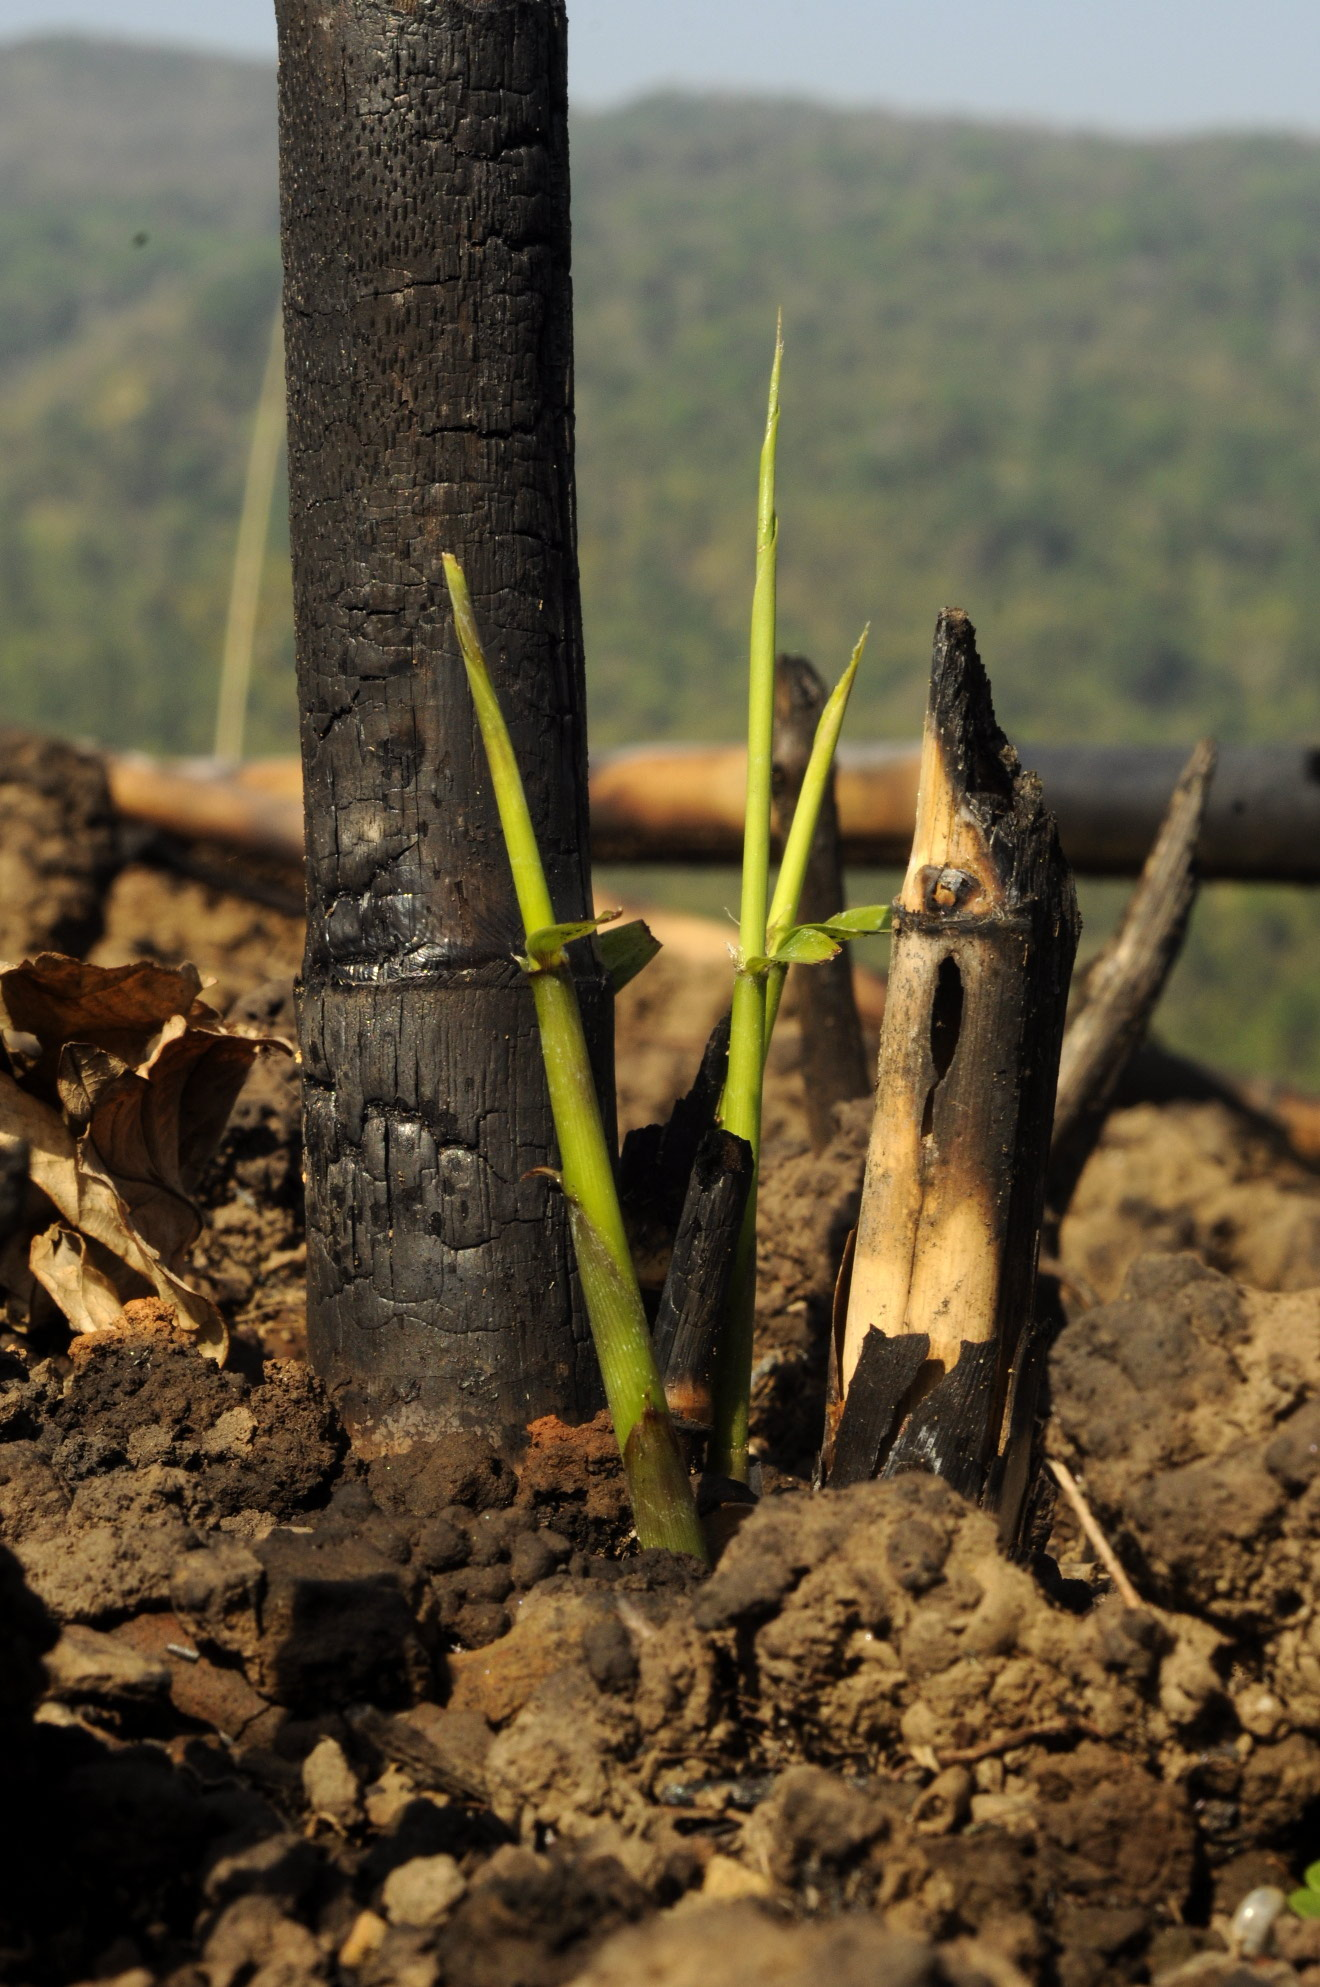 Crop cycles: Fire and renewal in Mizoram